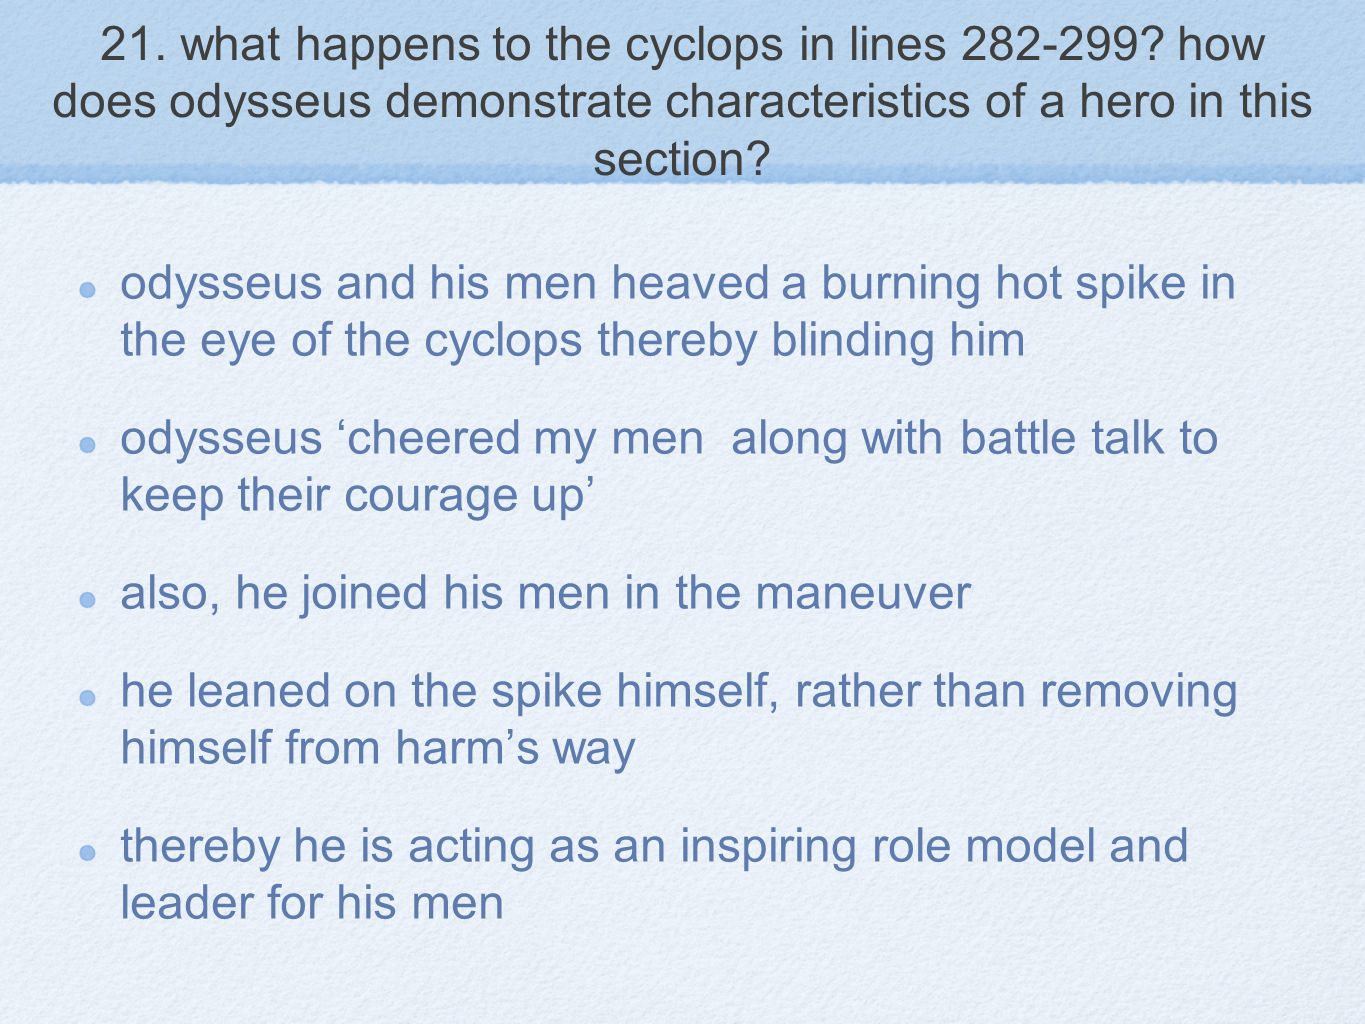 21. what happens to the cyclops in lines 282-299